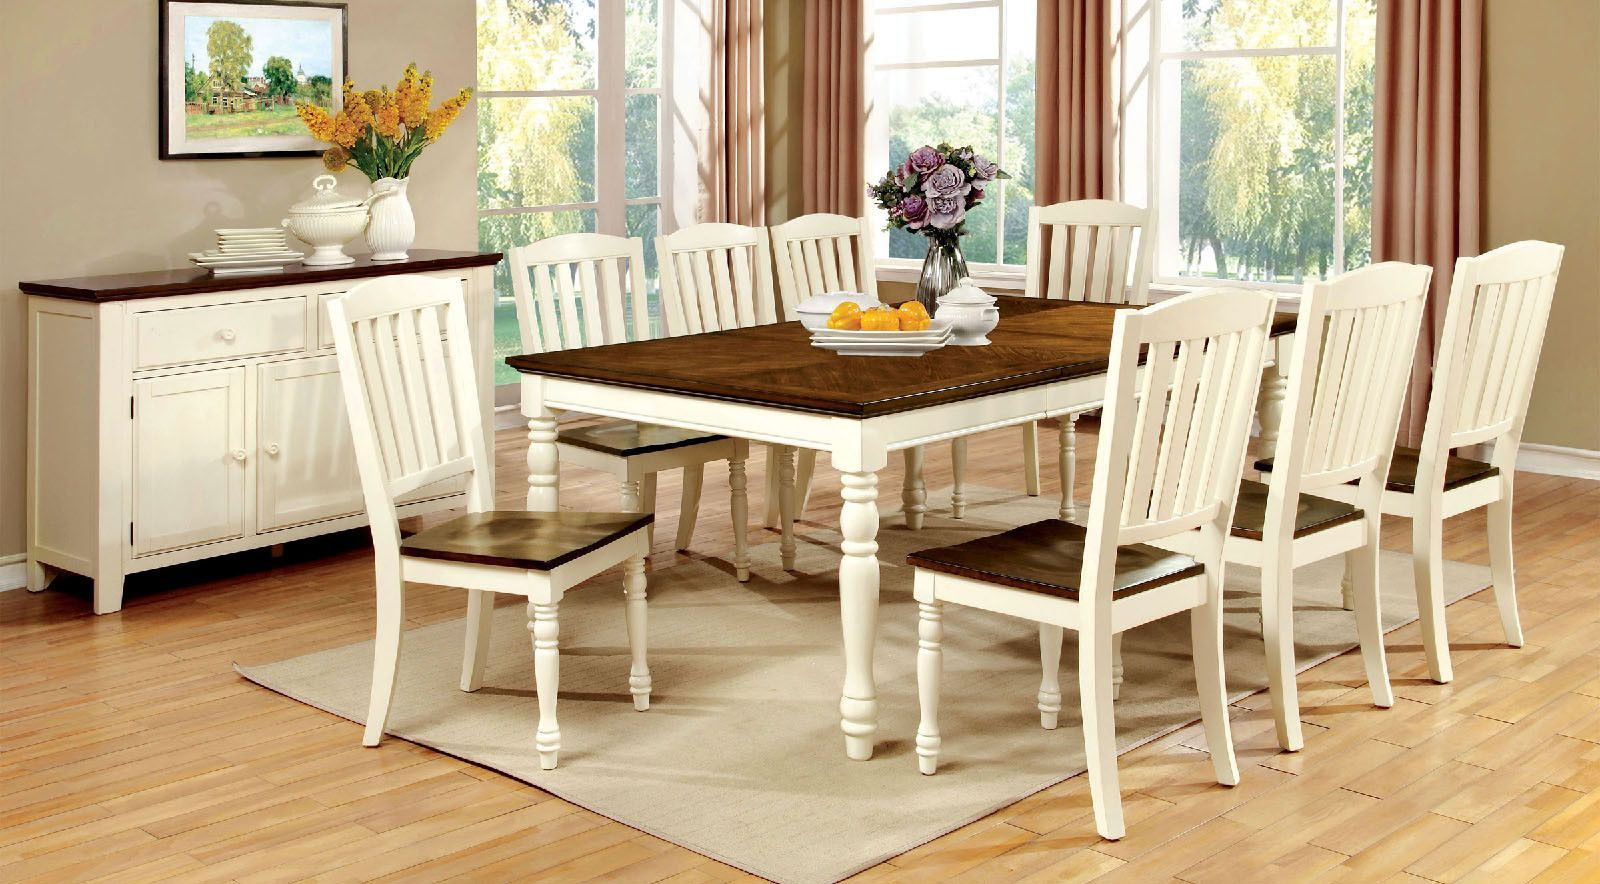 Harrisburg 9 Pcs Dining Table & Chairs Set Cm3216T  Products Fascinating 9 Pcs Dining Room Set Review